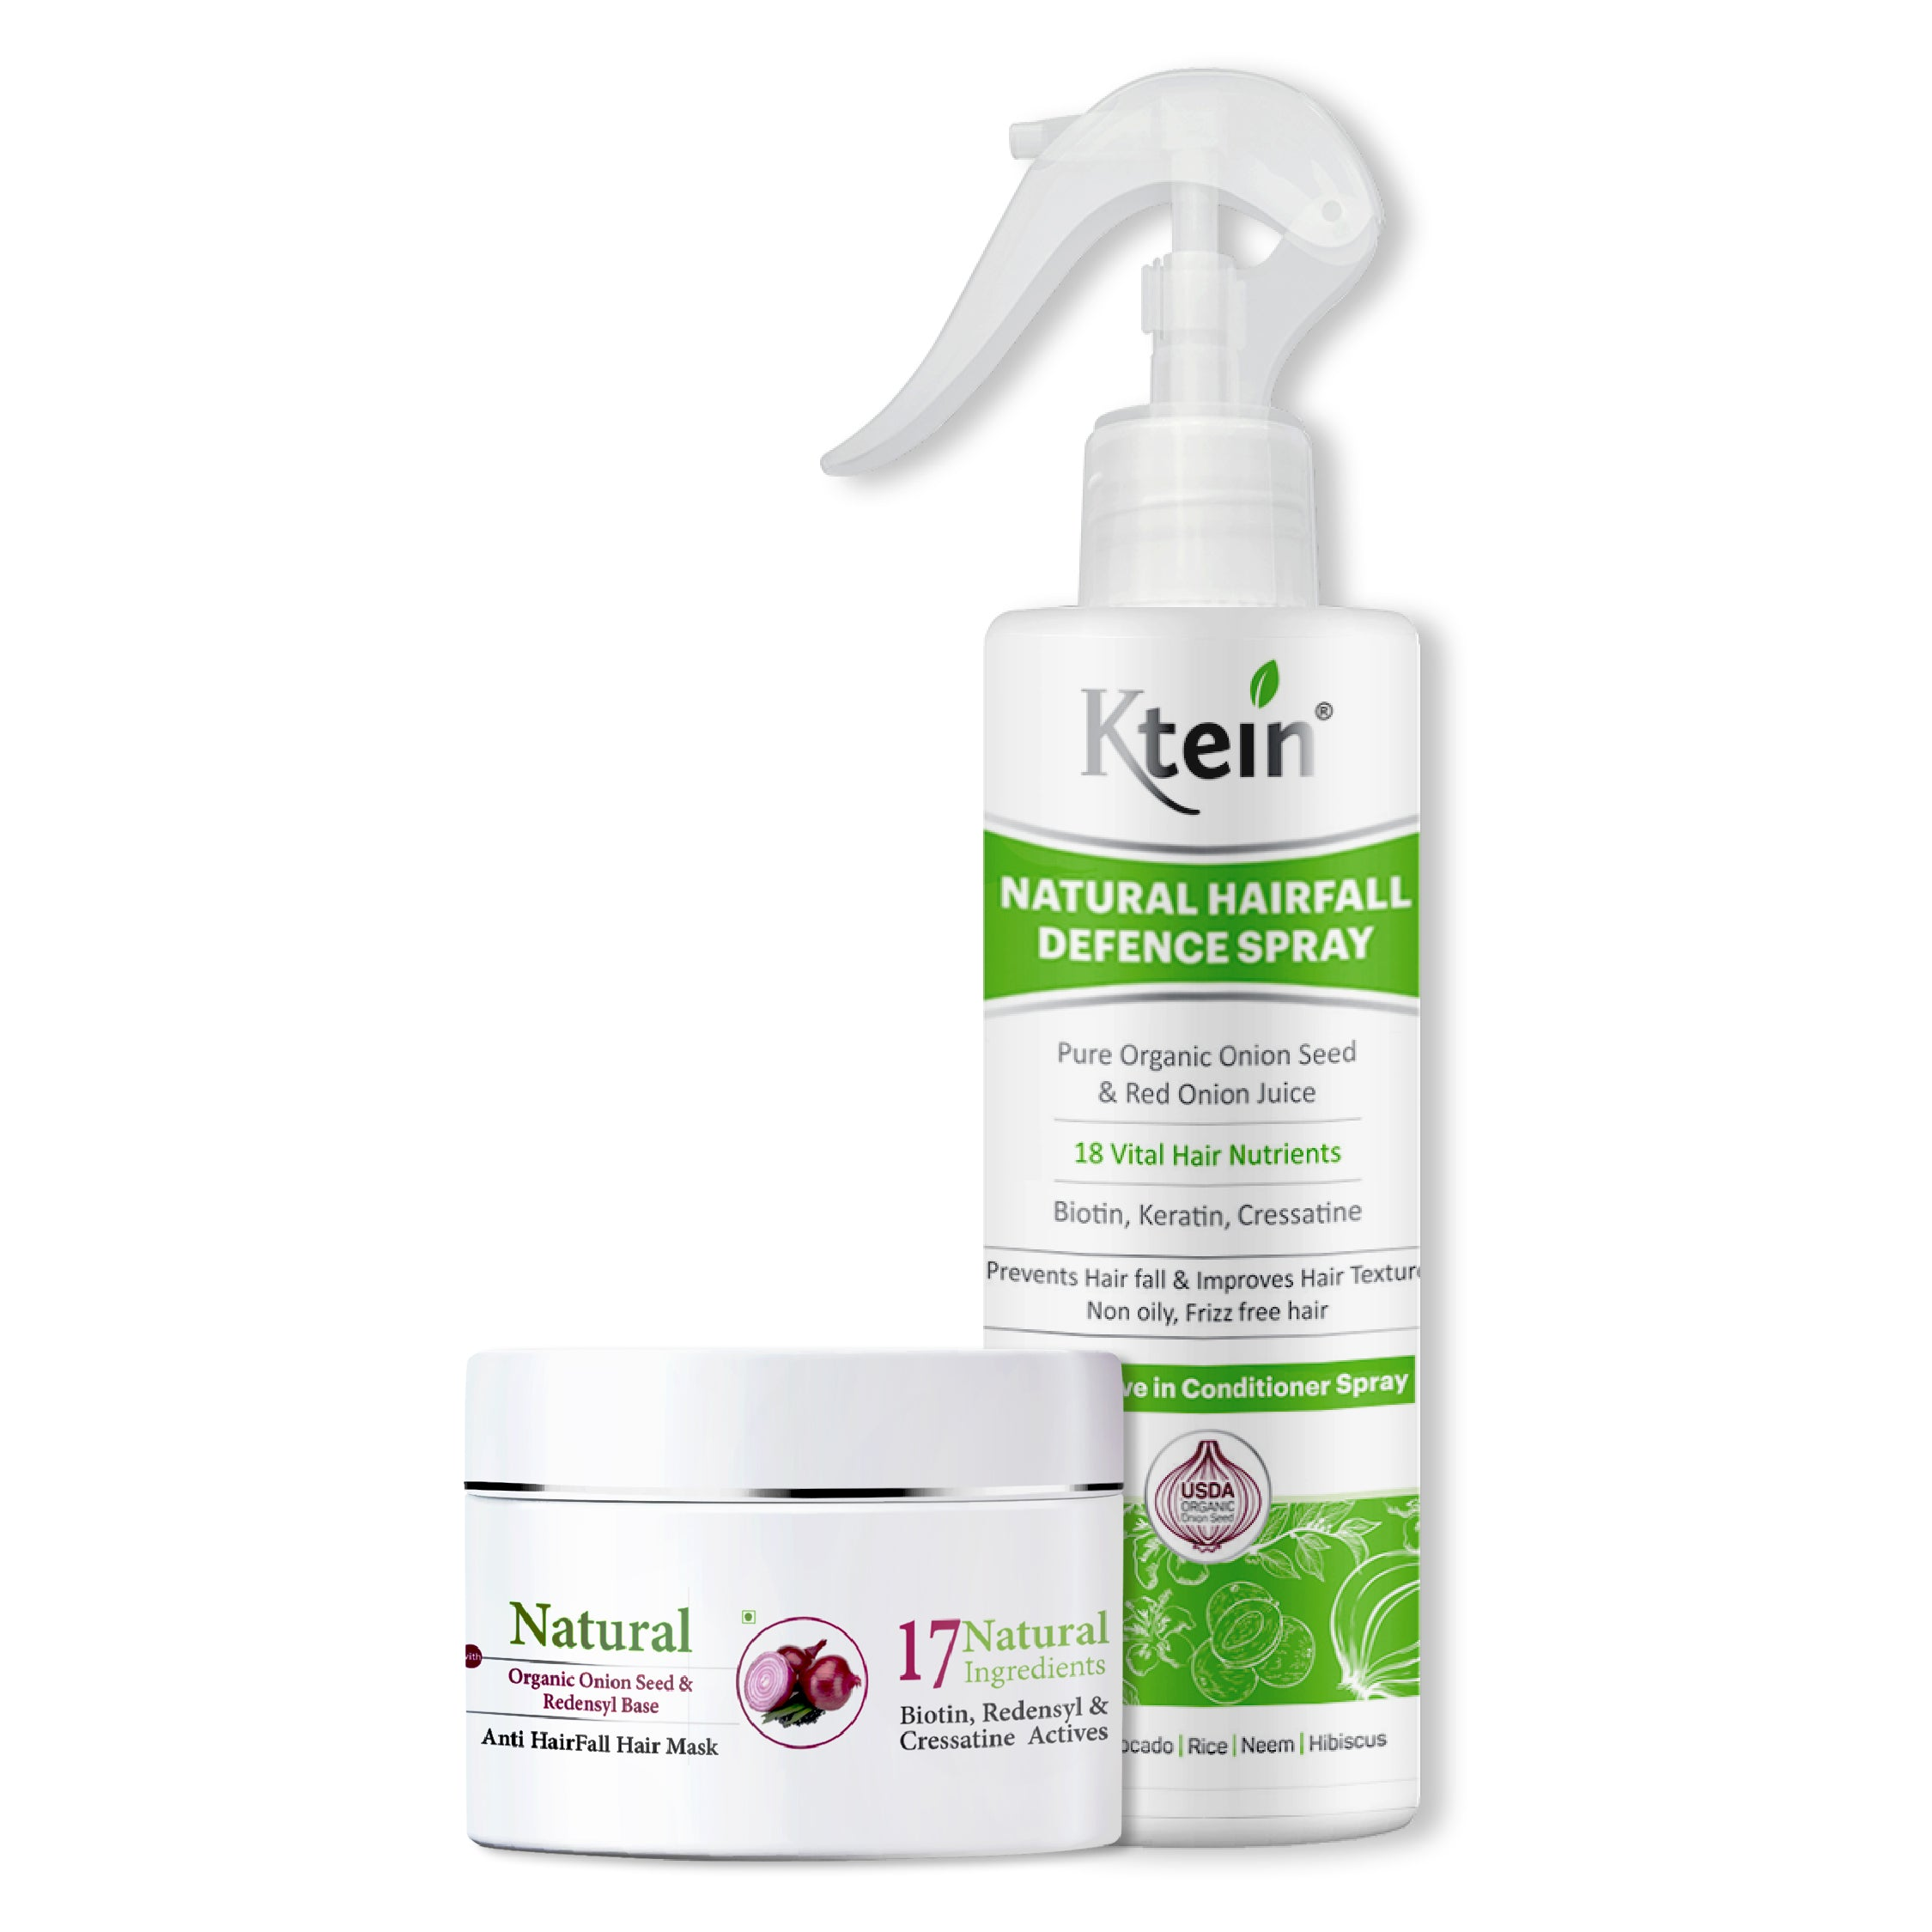 Ktein Hairfall Combo - Ktein Cosmetics - Essence Of Natural Hair Care Products